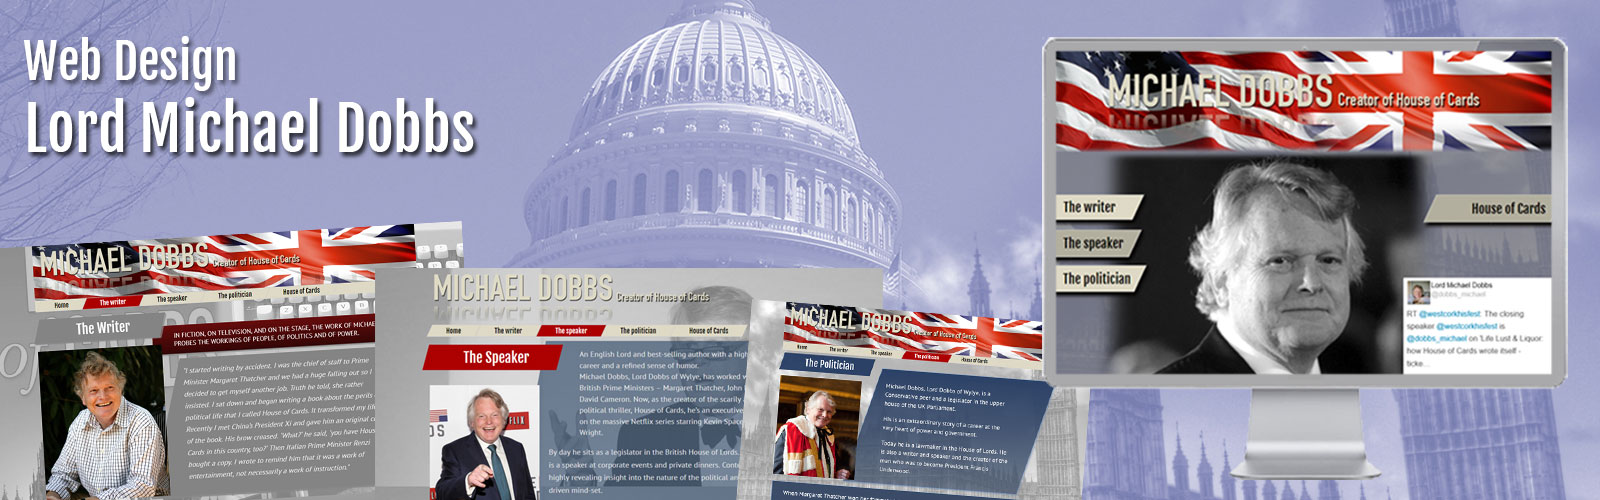 Website Design of Lord Michael Dobbs by New Time Media